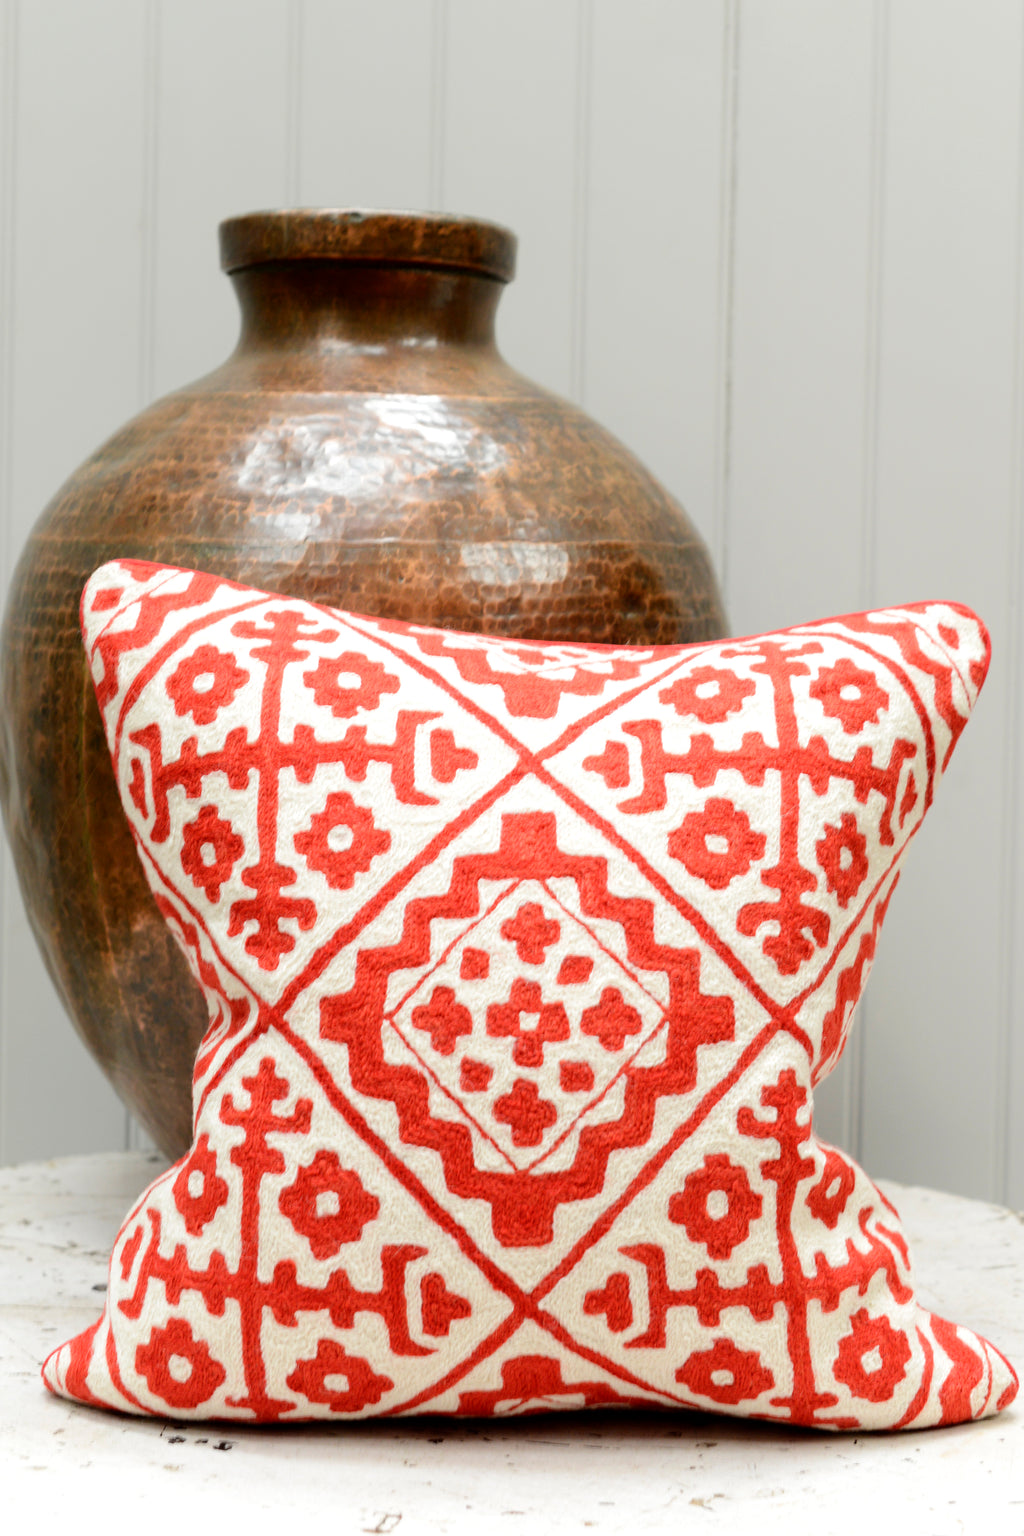 Red patterned cushion leaning on a brass pot